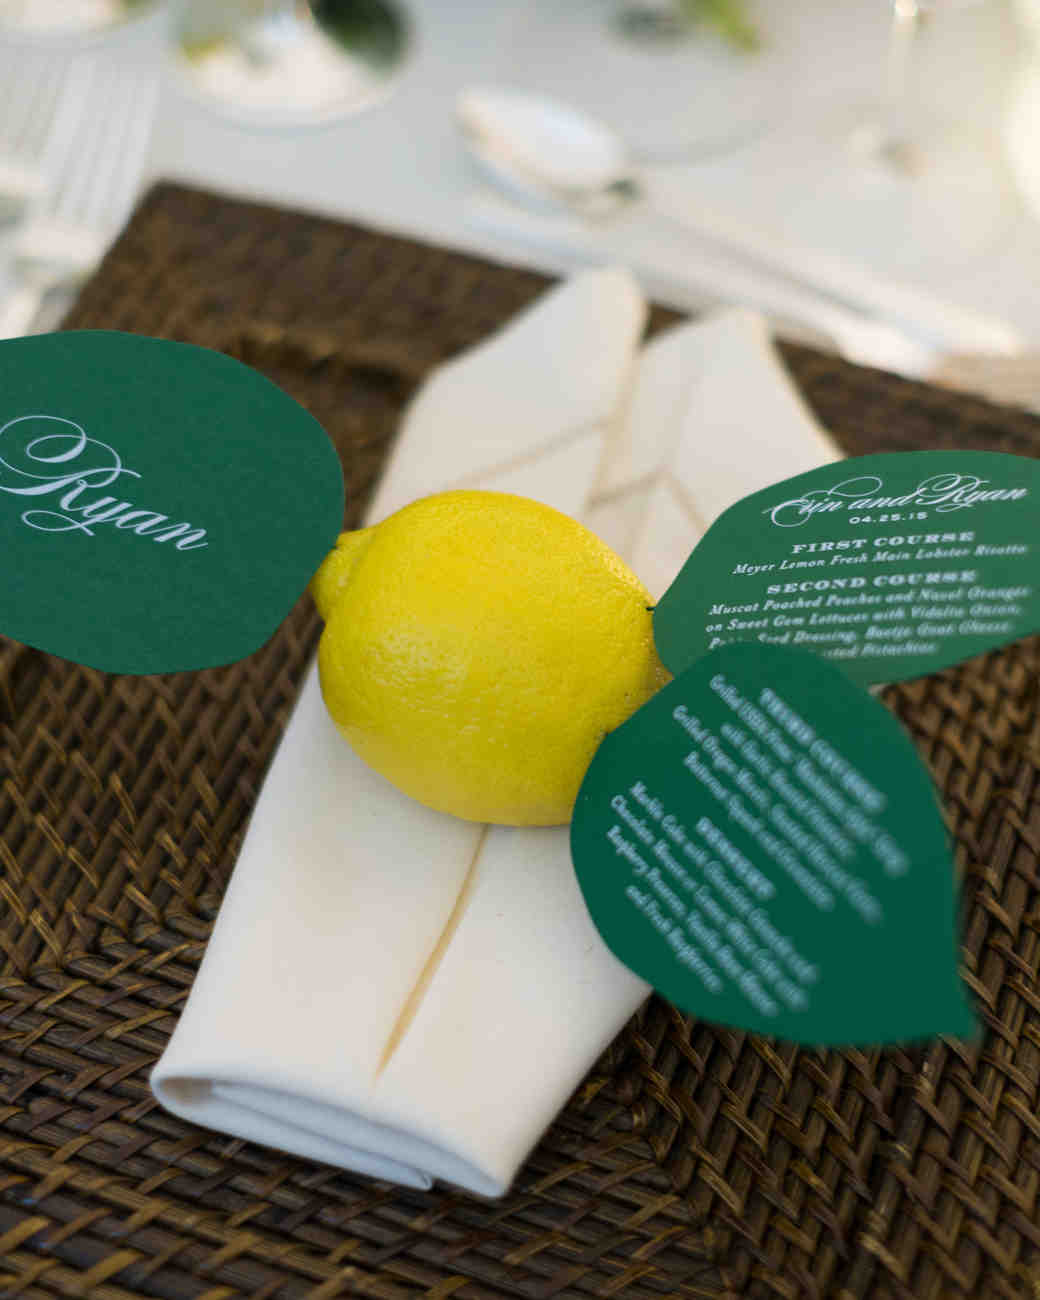 erin-ryan-florida-wedding-placesetting-1104-s113010-0516.jpg